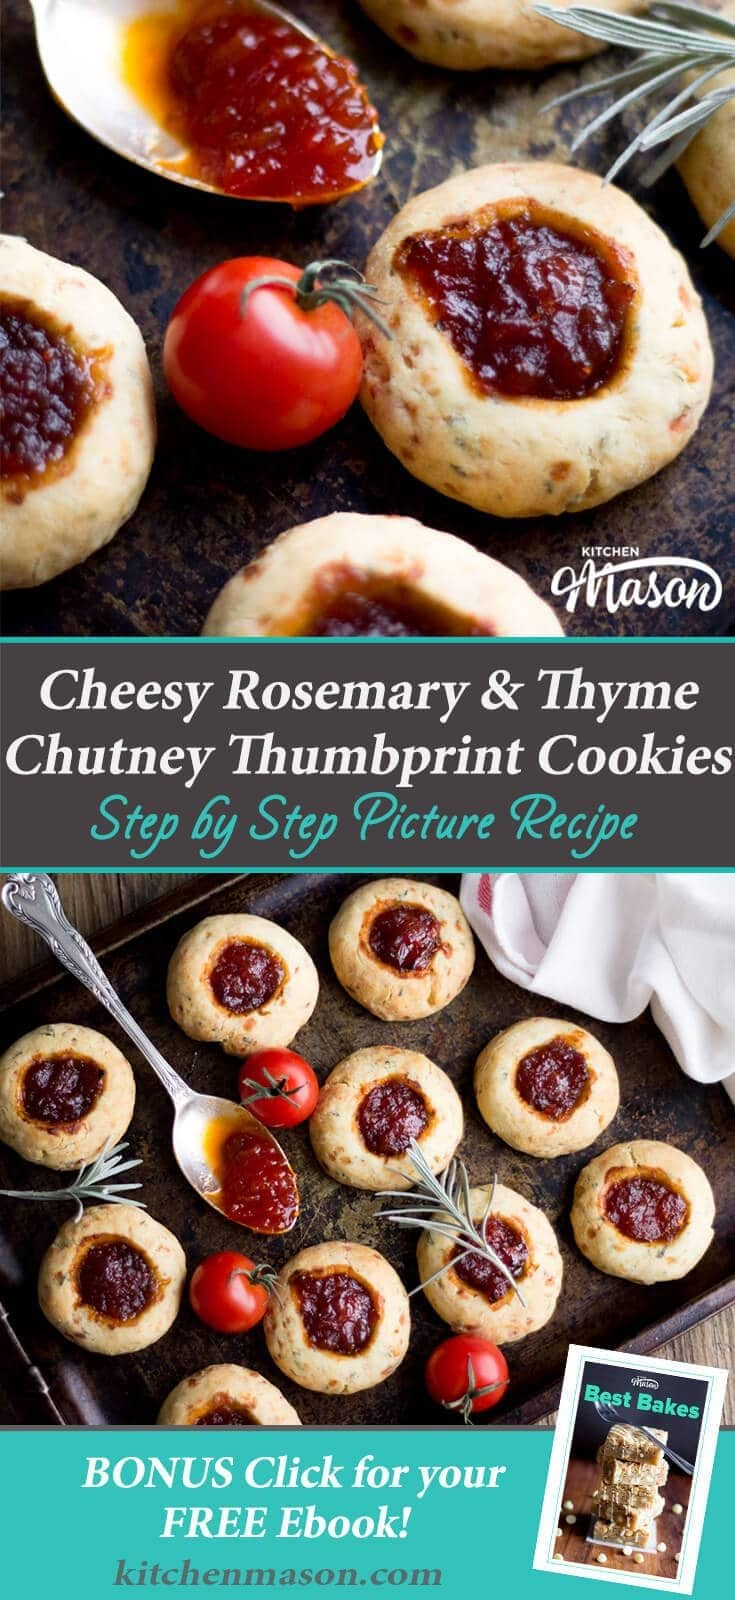 This cheesy rosemary and thyme chutney thumbprint cookie recipe makes the PERFECT party food or snacks! So moreish, you'll have to make two batches... #partyfood #snacks #thumbprintcookies